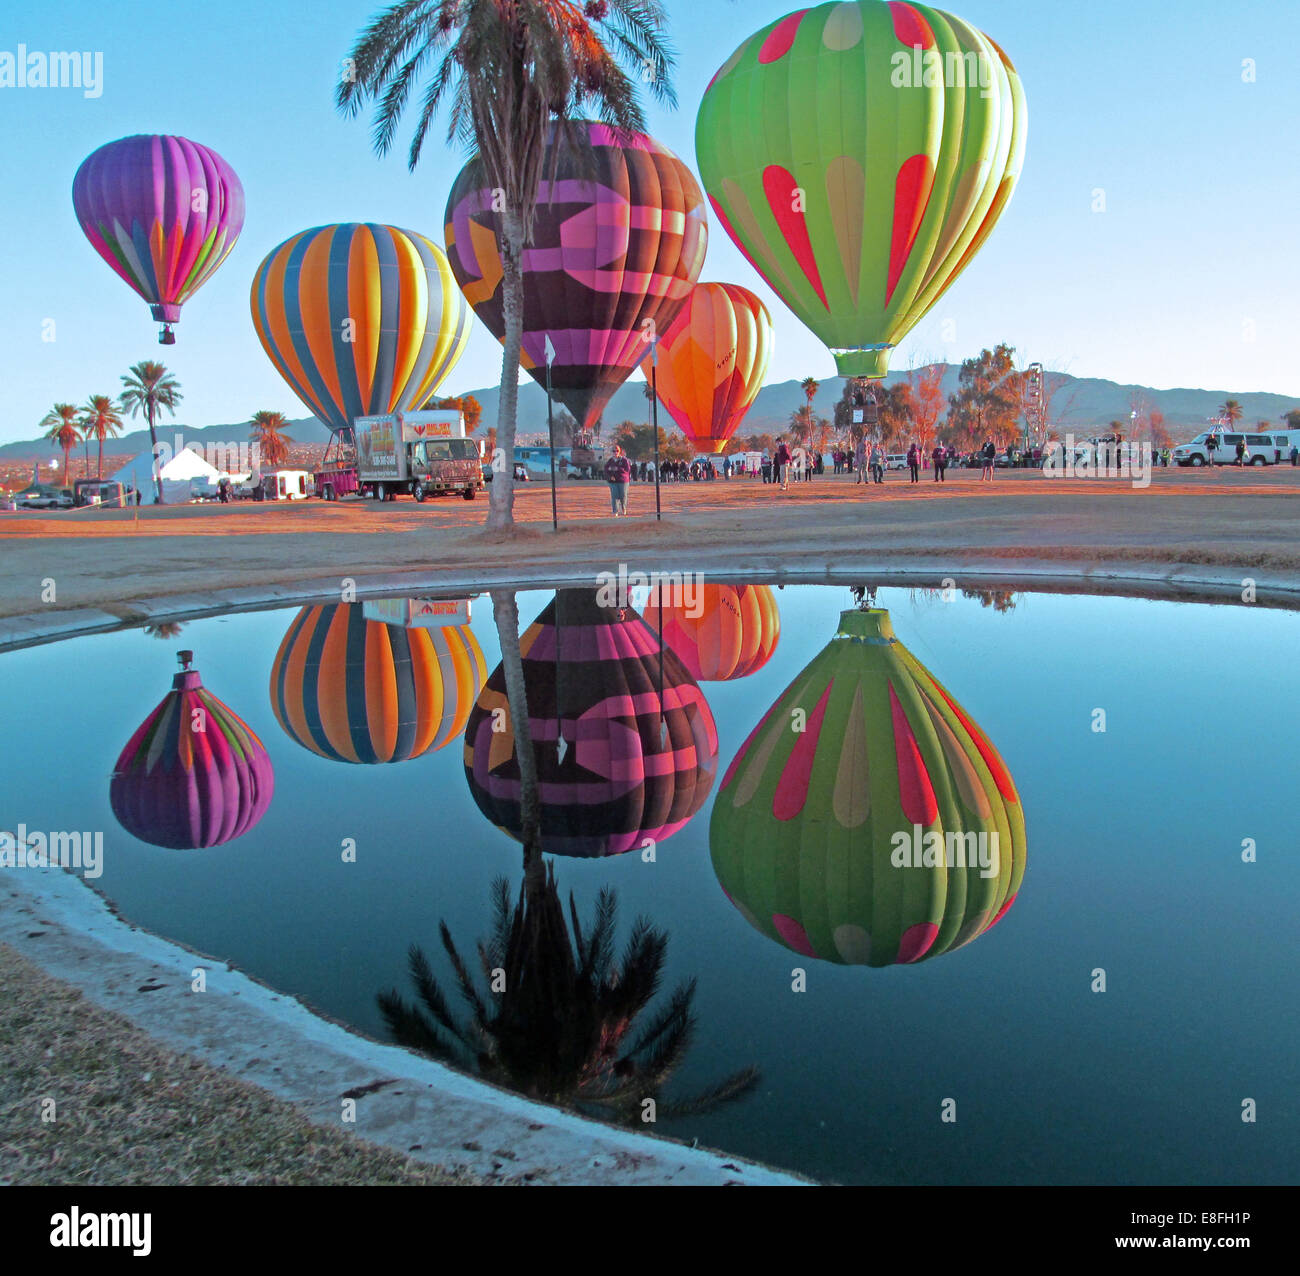 USA, Arizona, Mohave County, Lake Havasu City, Beachcomber Boulevard, Lake Havasu, Lake Havasu Balloon Festival, - Stock Image